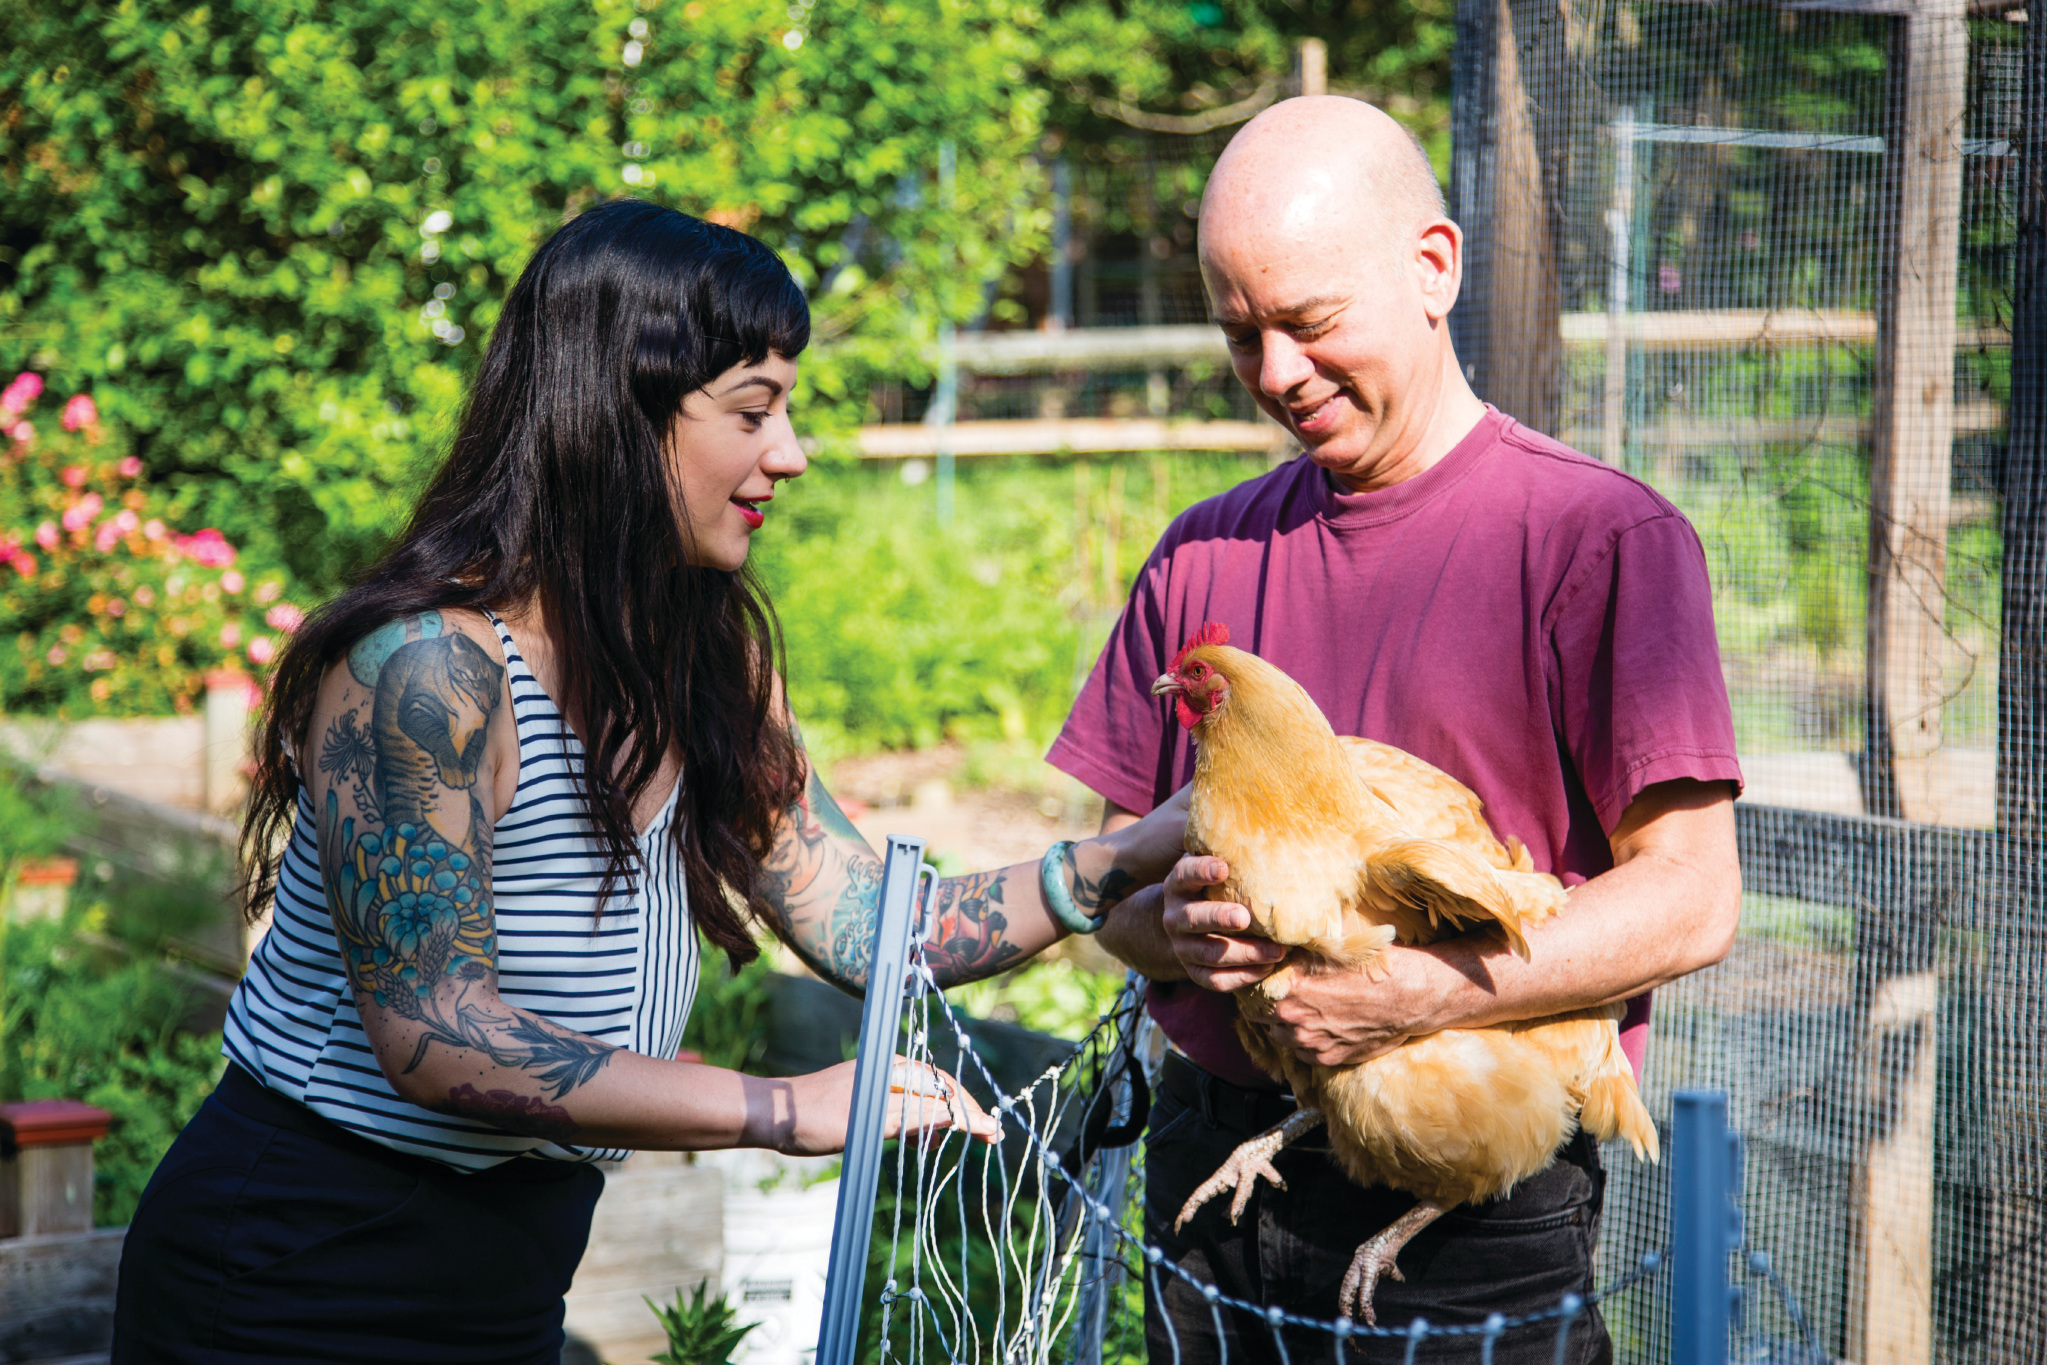 Reana KOvalcik and Ferd hoefner spend time with Little Nettie, Ferd's chicken.